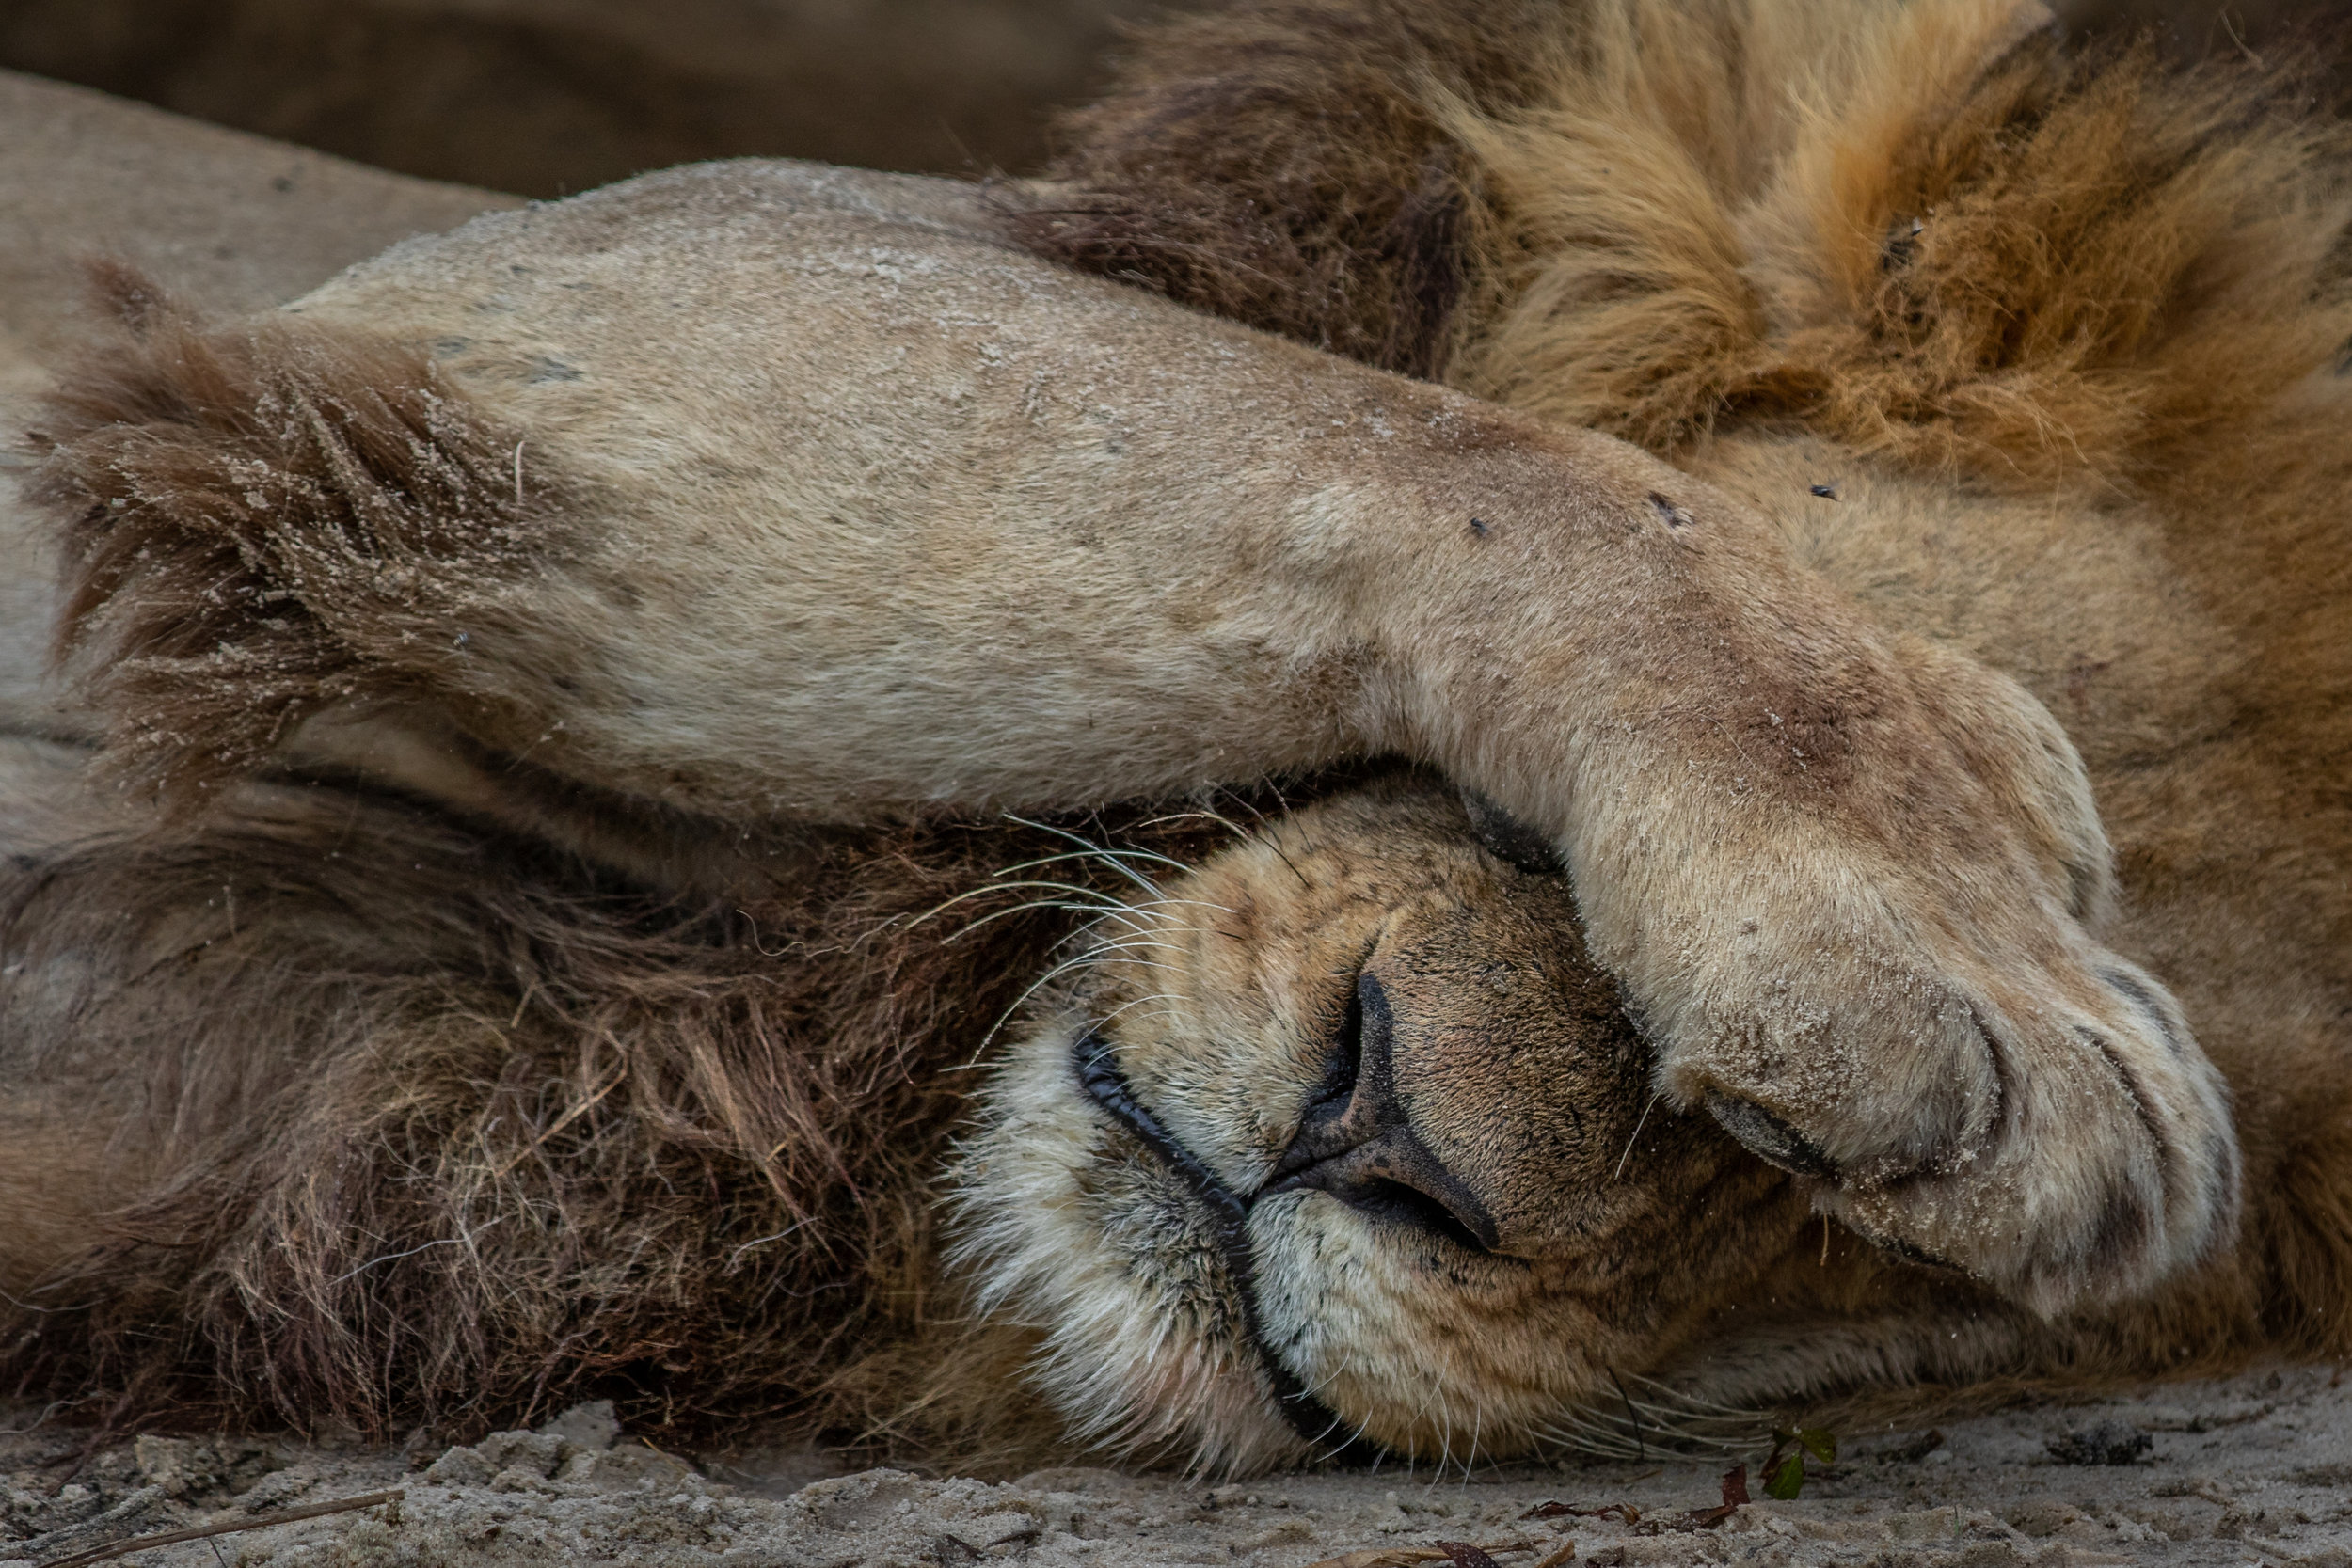 'Sleepy King' Botswana